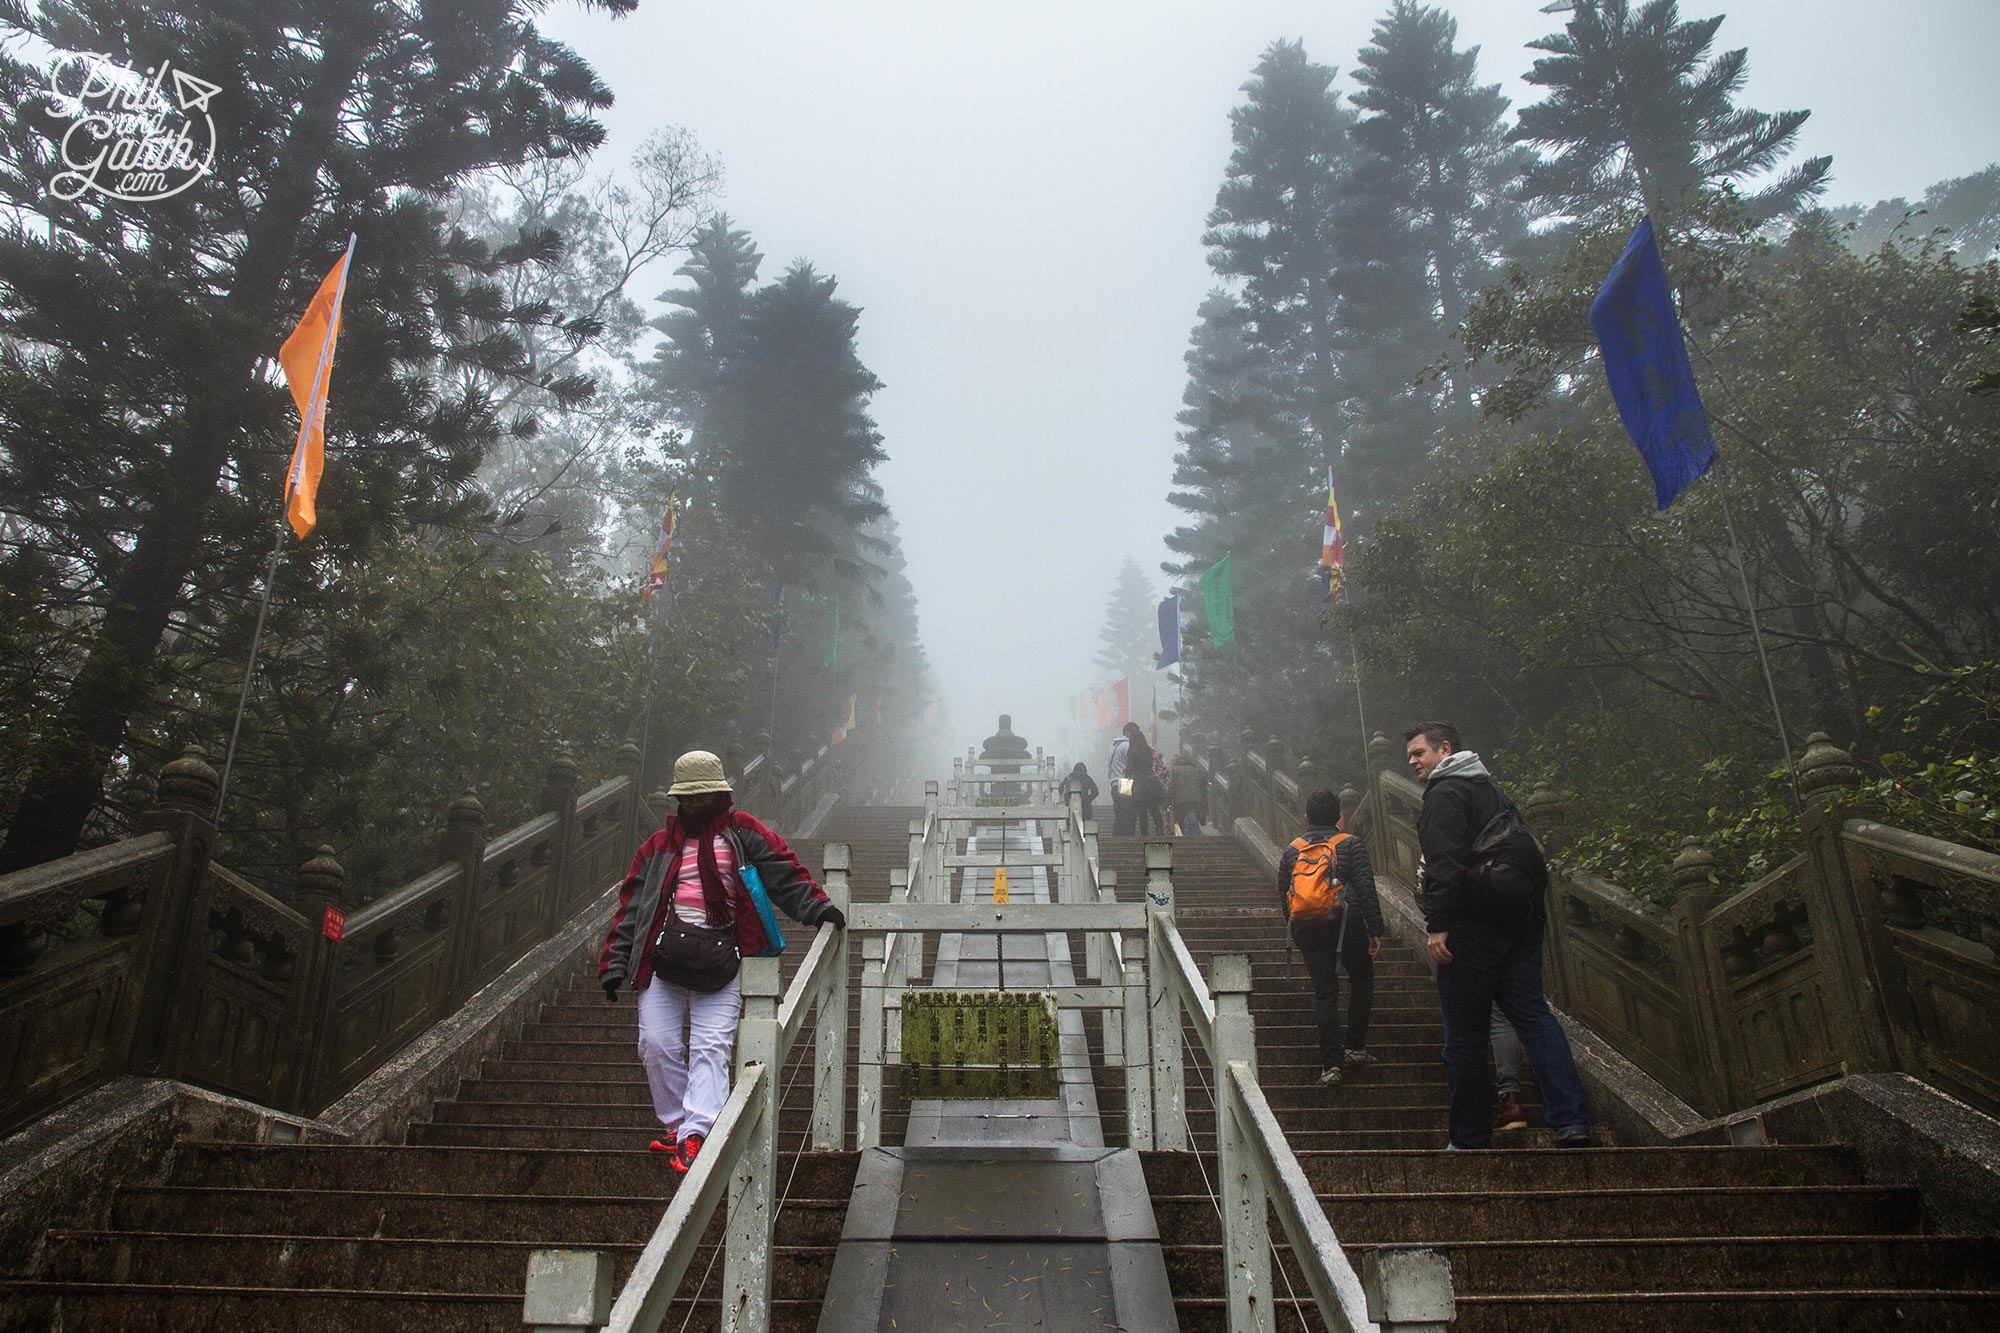 We should have had a glimpse of the Tian Tan Buddha as we walked up the steps